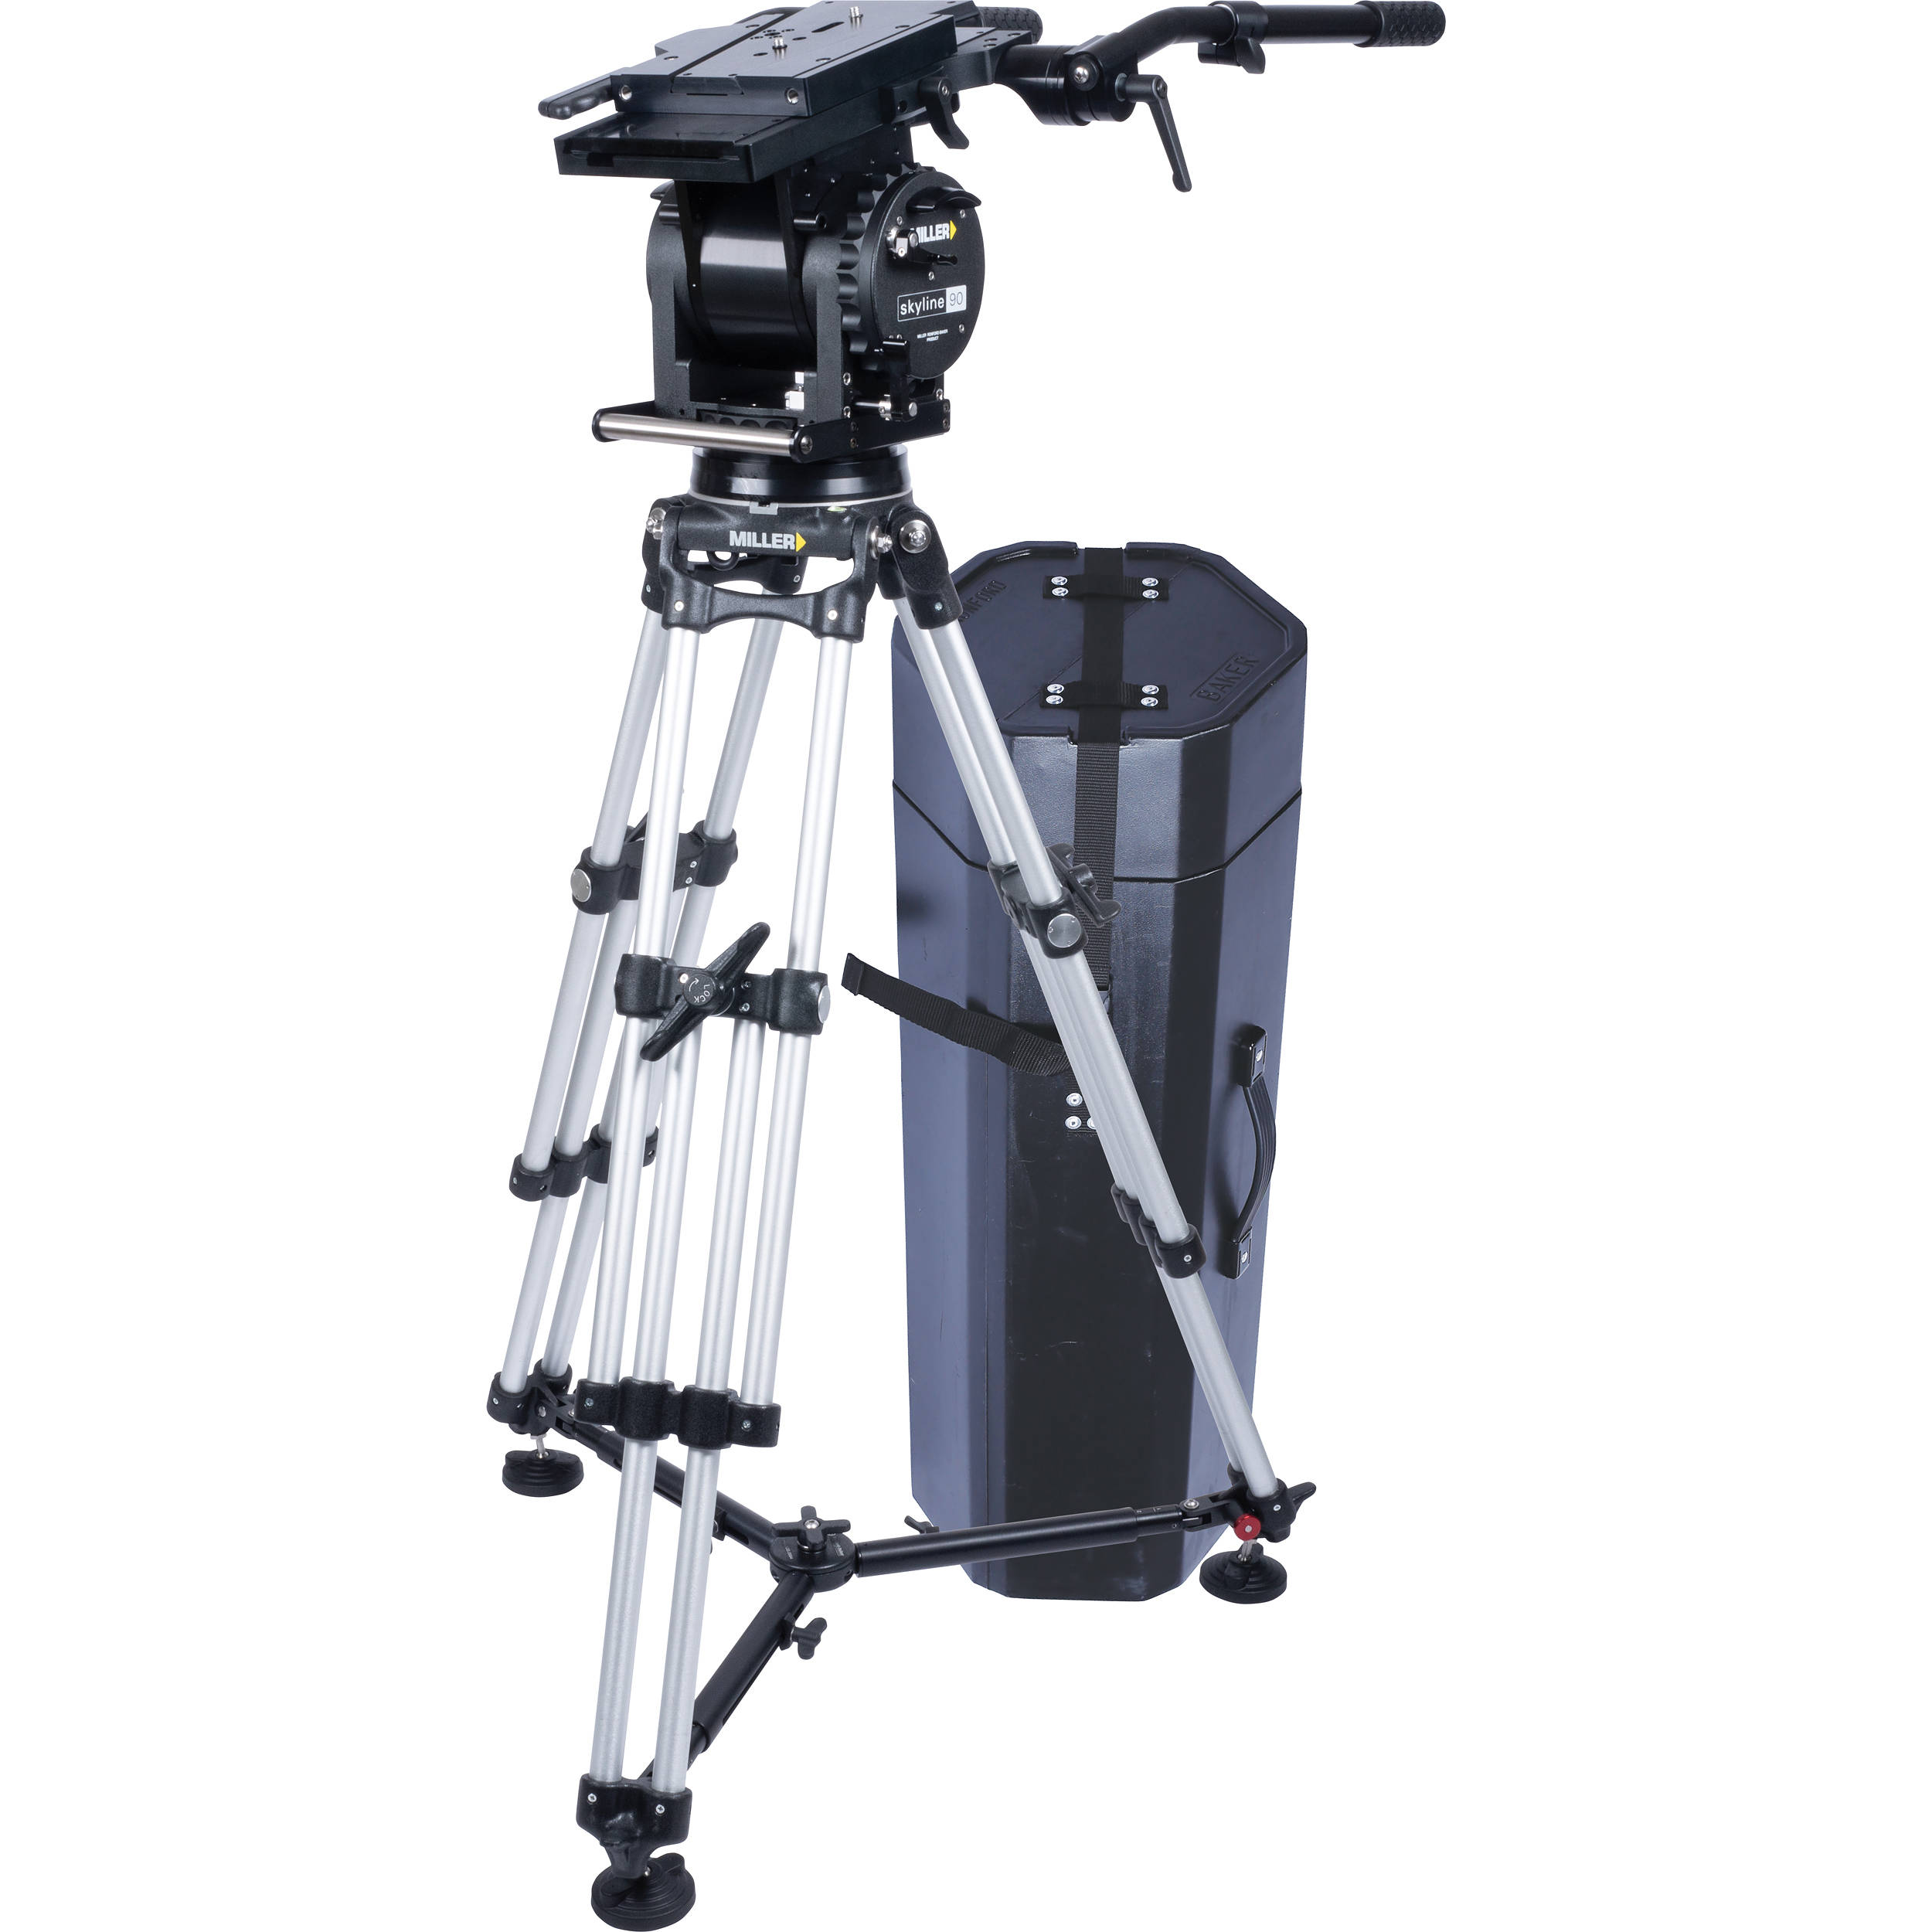 Miller Skyline 90 HD 1 Stage Alloy Tripod System With Off Ground Spreader